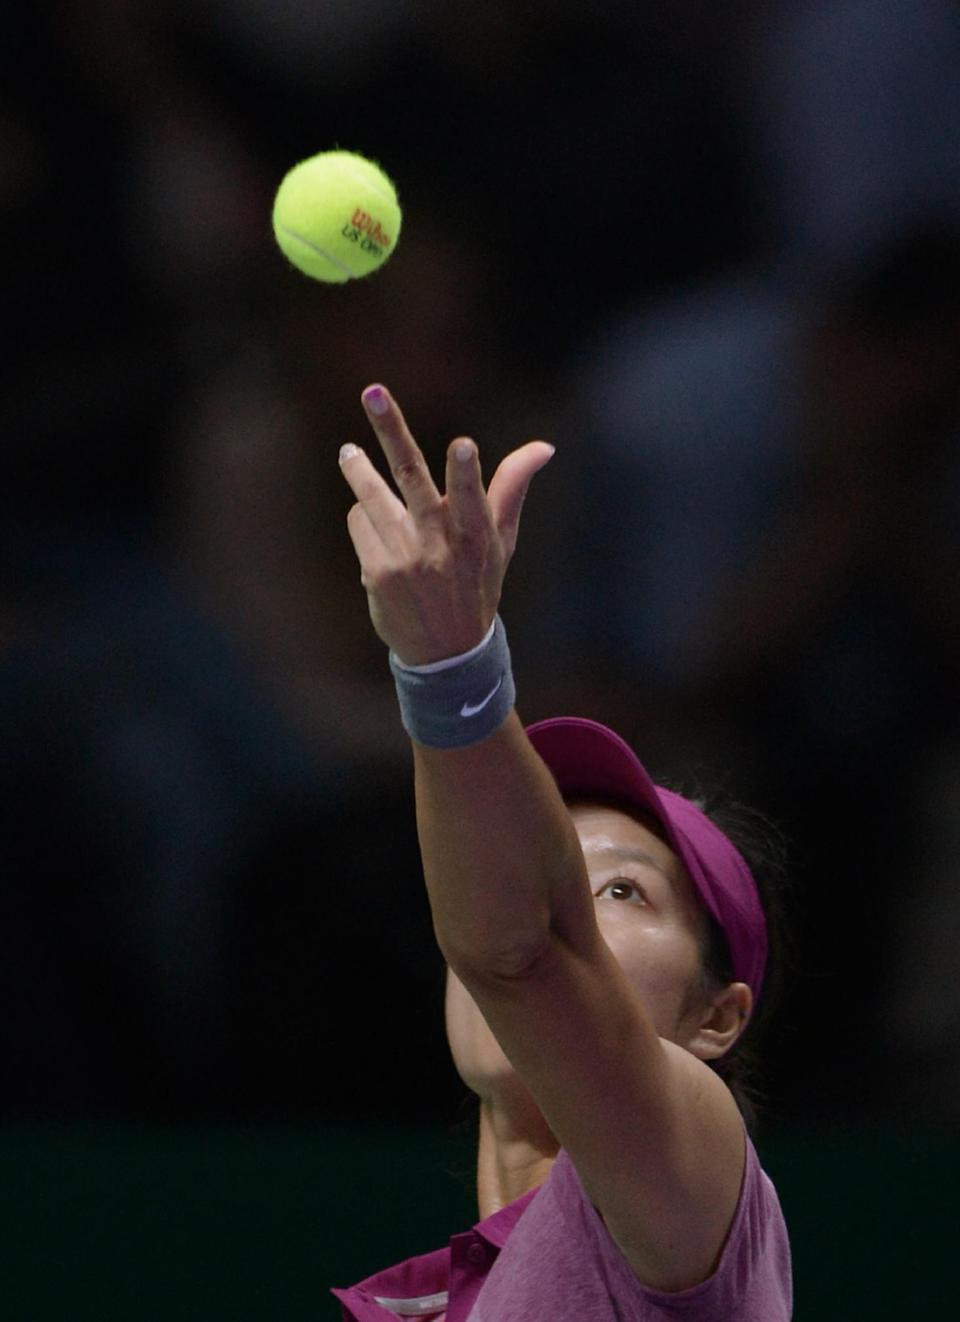 Li Na of China prepares to serve to Serena Williams of the USA during their final tennis match at the WTA Championship in Istanbul, Turkey, Sunday, Oct. 27, 2013. The world's top female tennis players compete in the championships which runs from Oct. 22 until Oct. 27.(AP Photo)